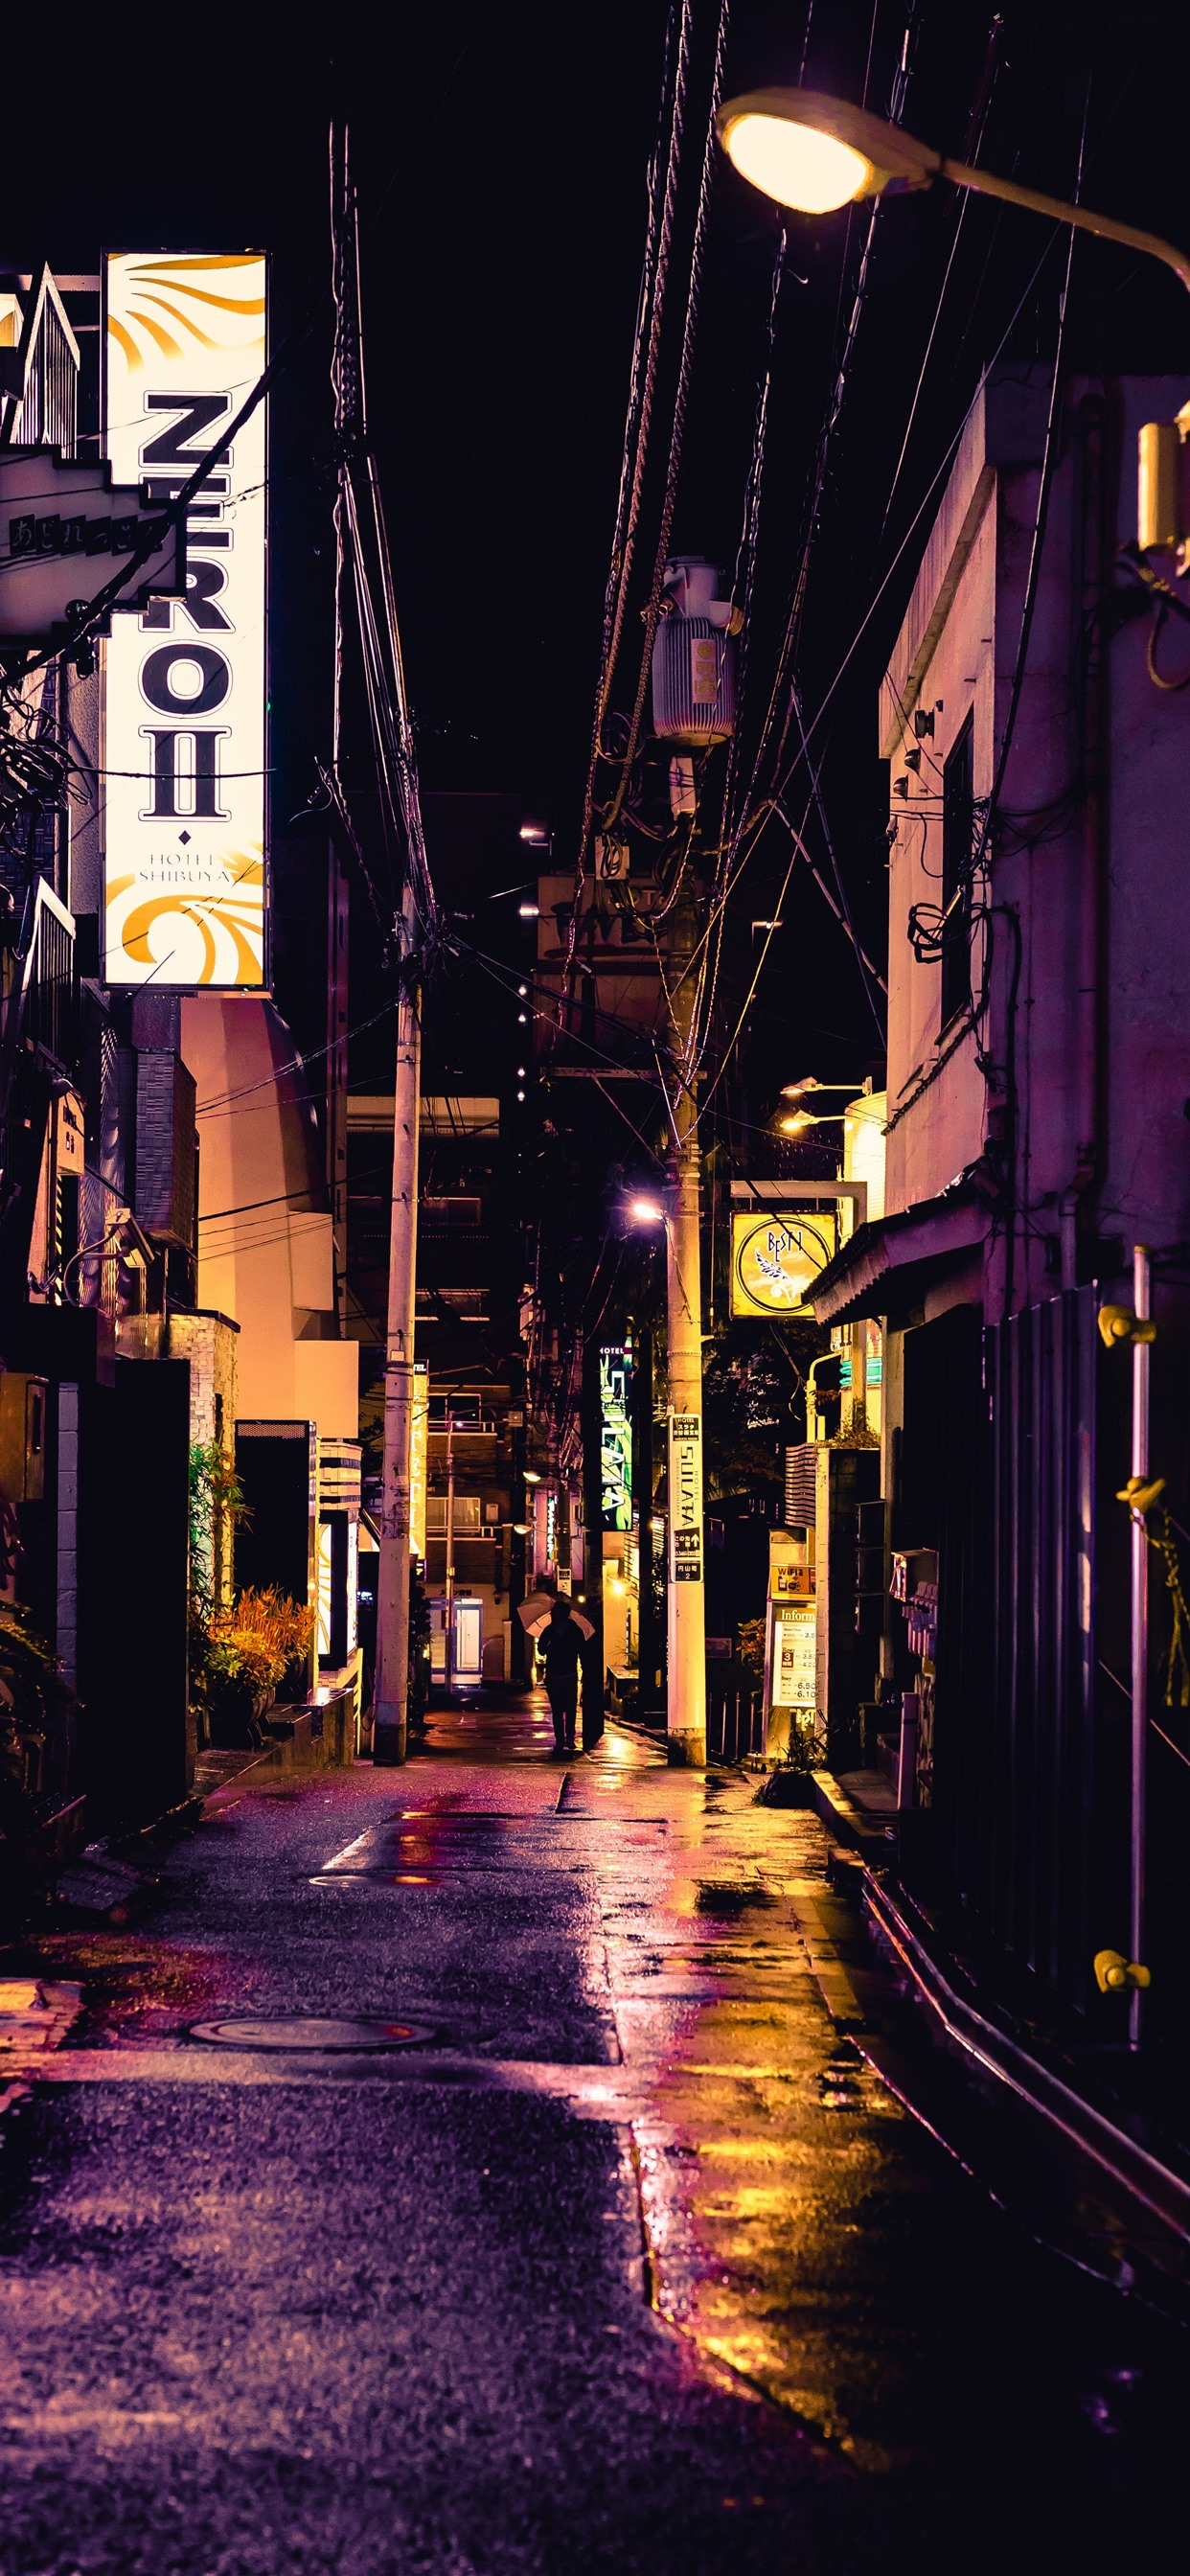 Street City Alley Night Lights Japan 1242x2688 Iphone